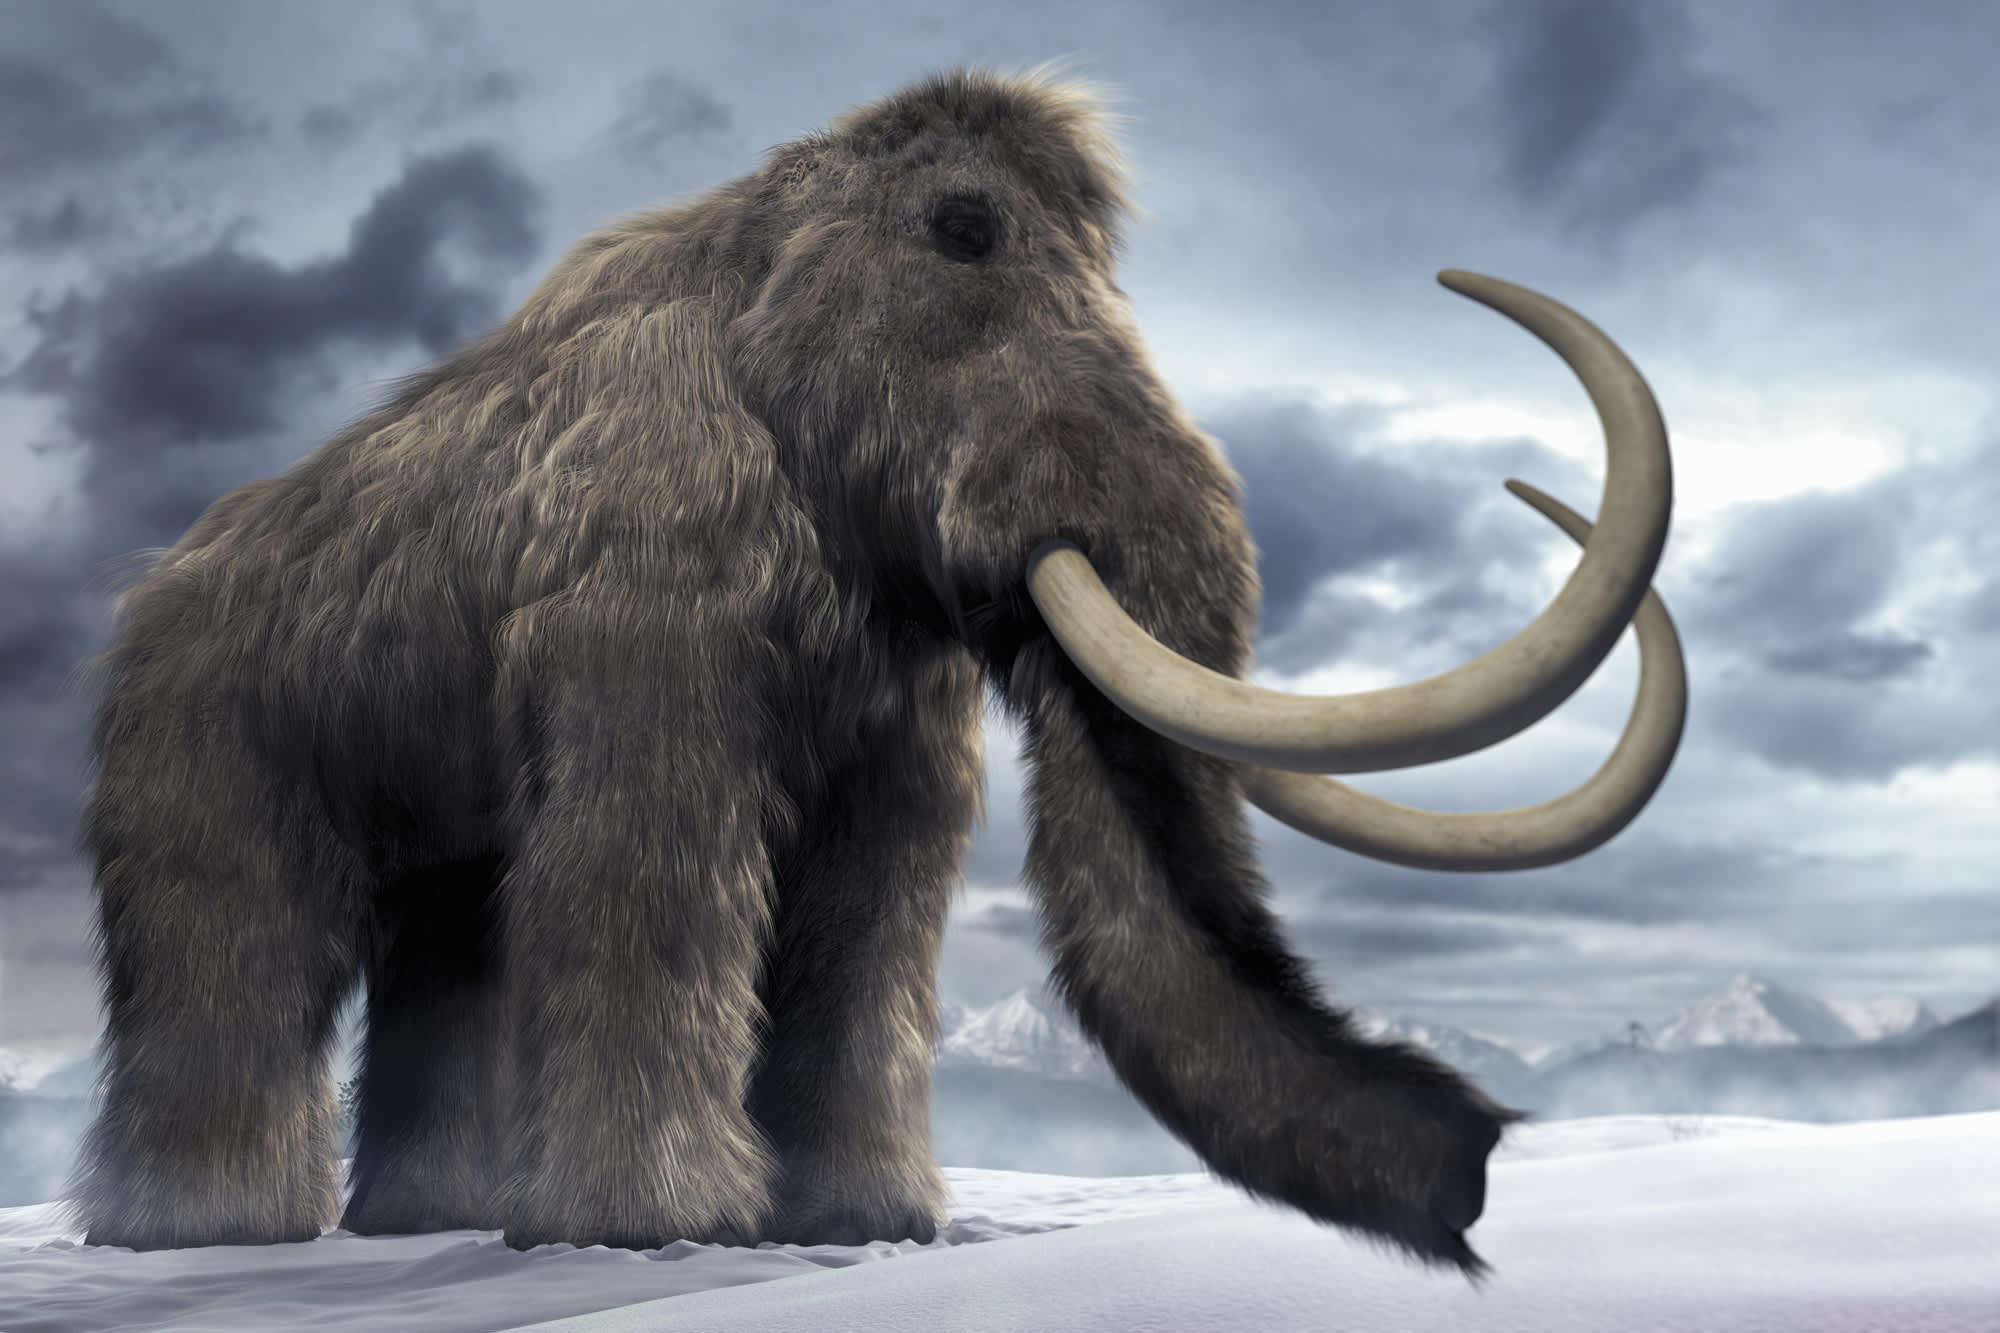 A digitally-generated image of a woolly mammoth.